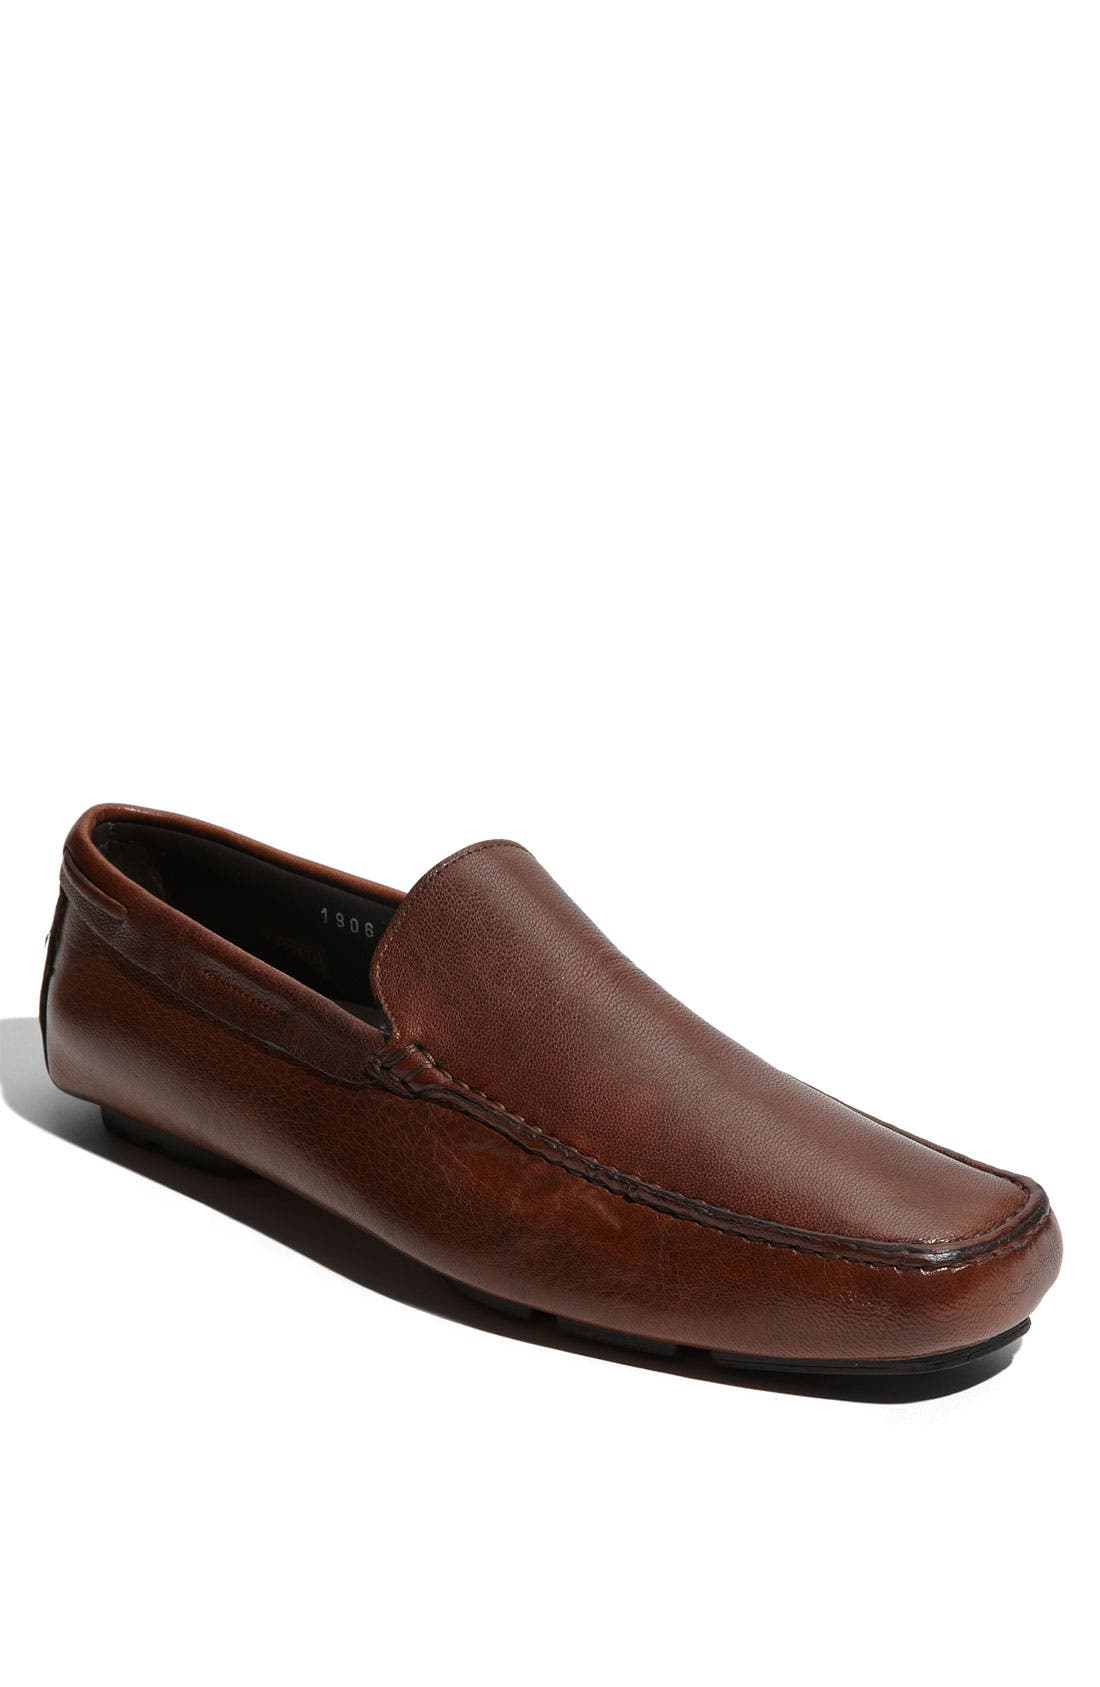 Main Image - To Boot New York 'Barkley' Loafer